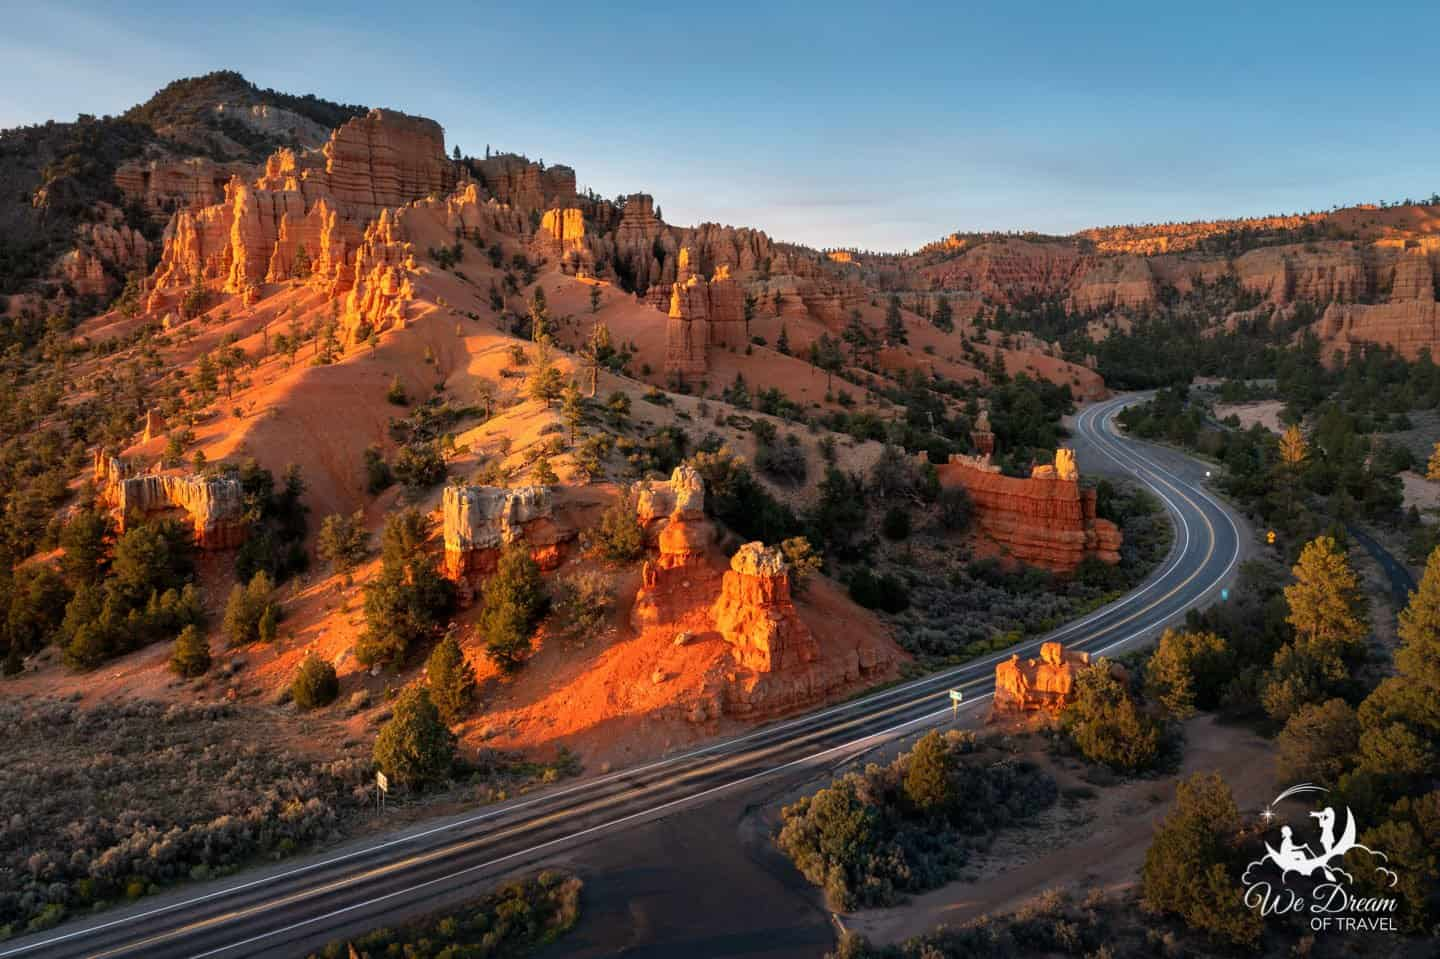 Scenic Byway 12 runs past the Red Canyon on the way to Bryce Canyon from Zion NP.